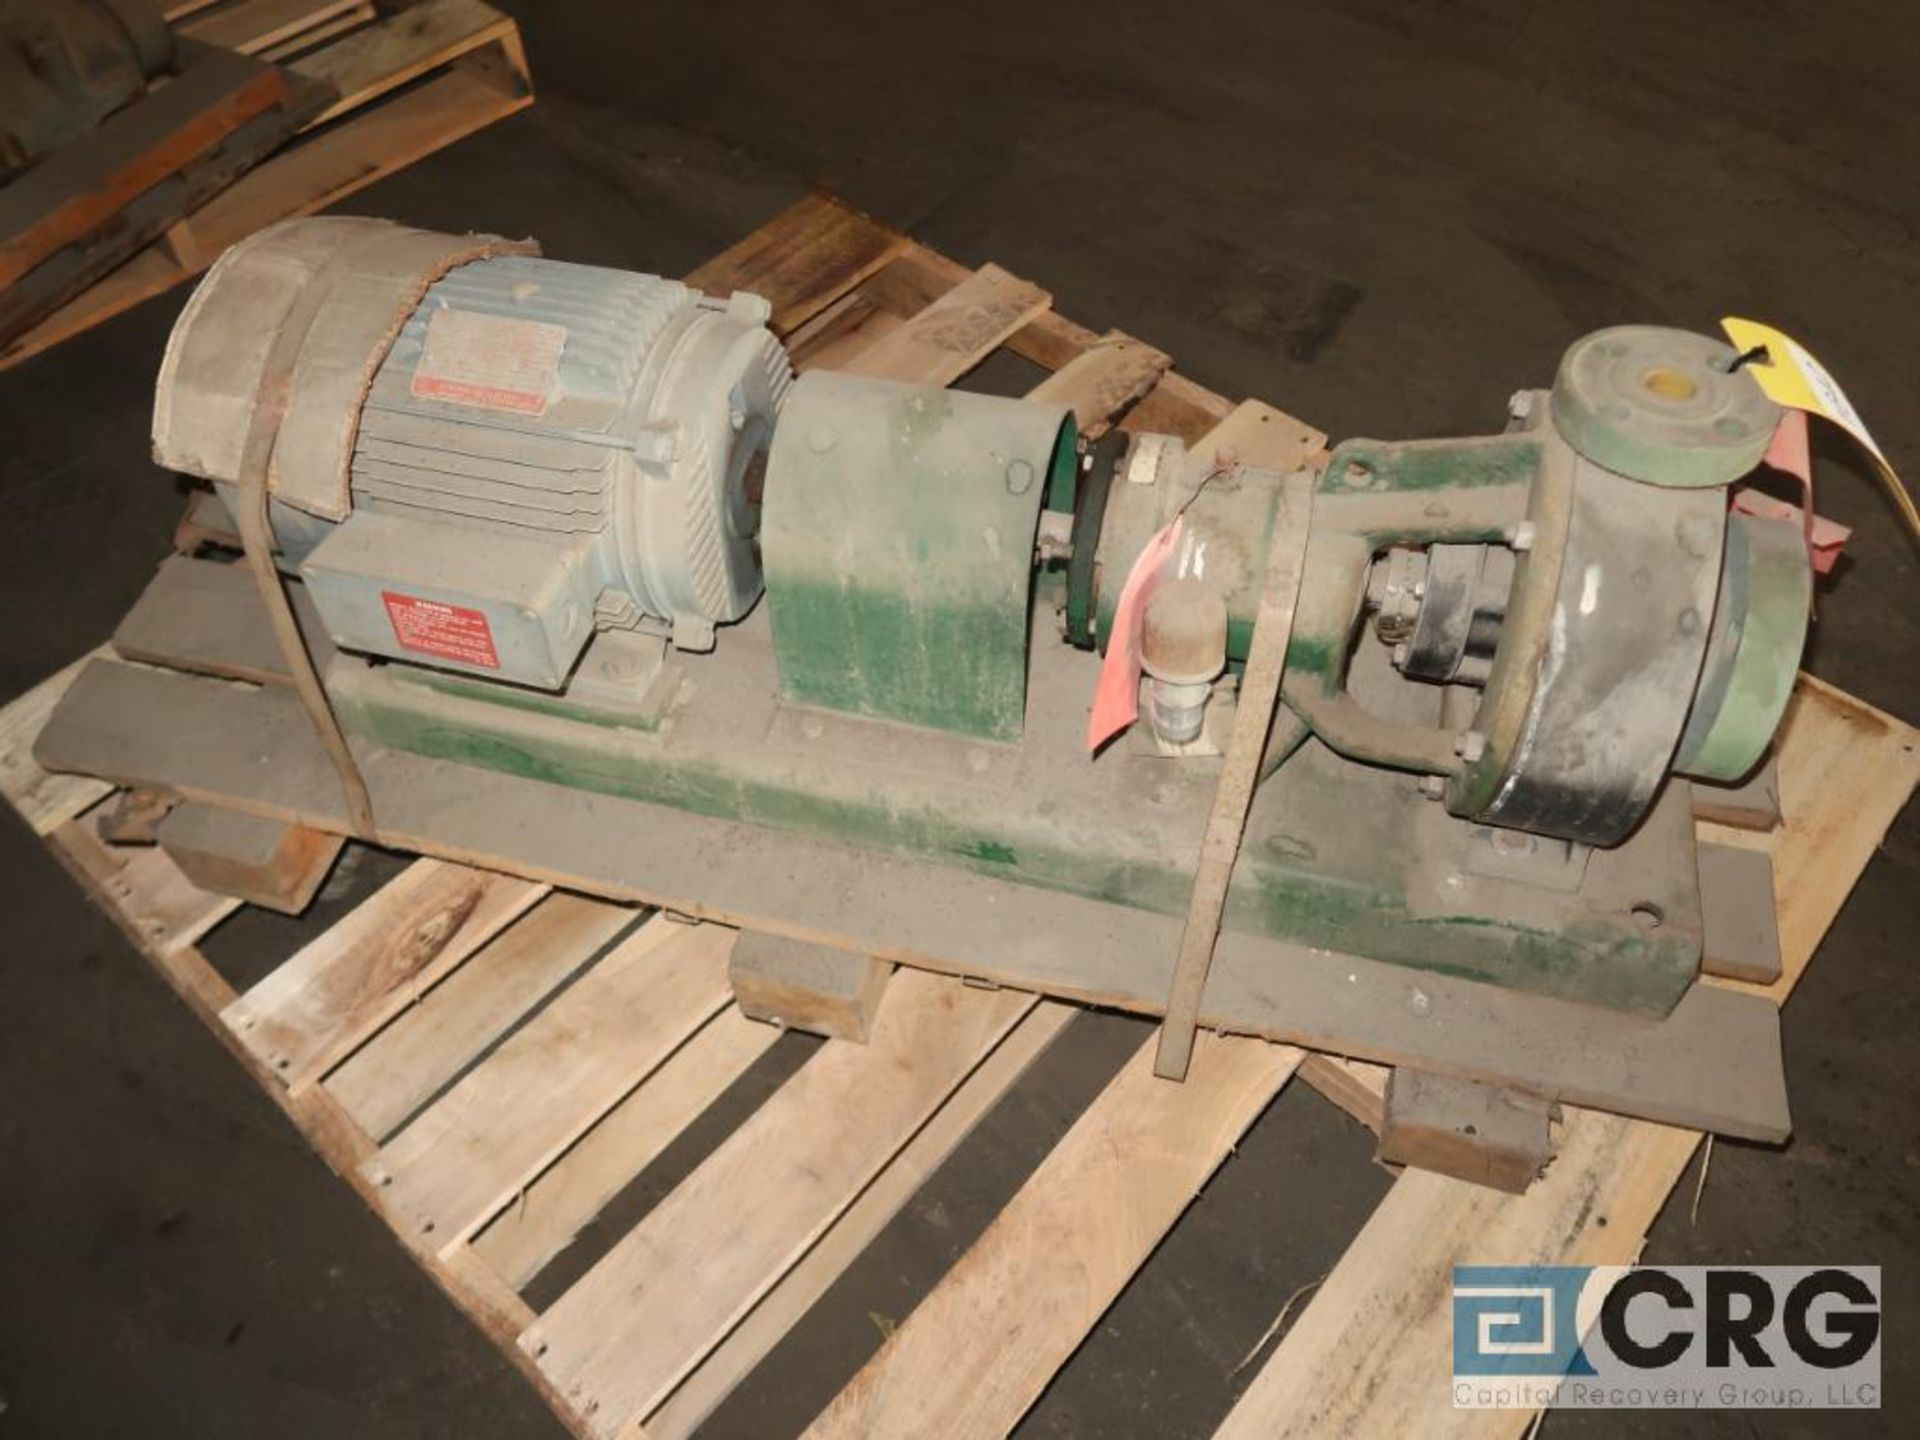 Fybroc 1160-10 2 x 1 centrifugal pump with 5 HP motor, s/n 262887 (Off Site Warehouse)